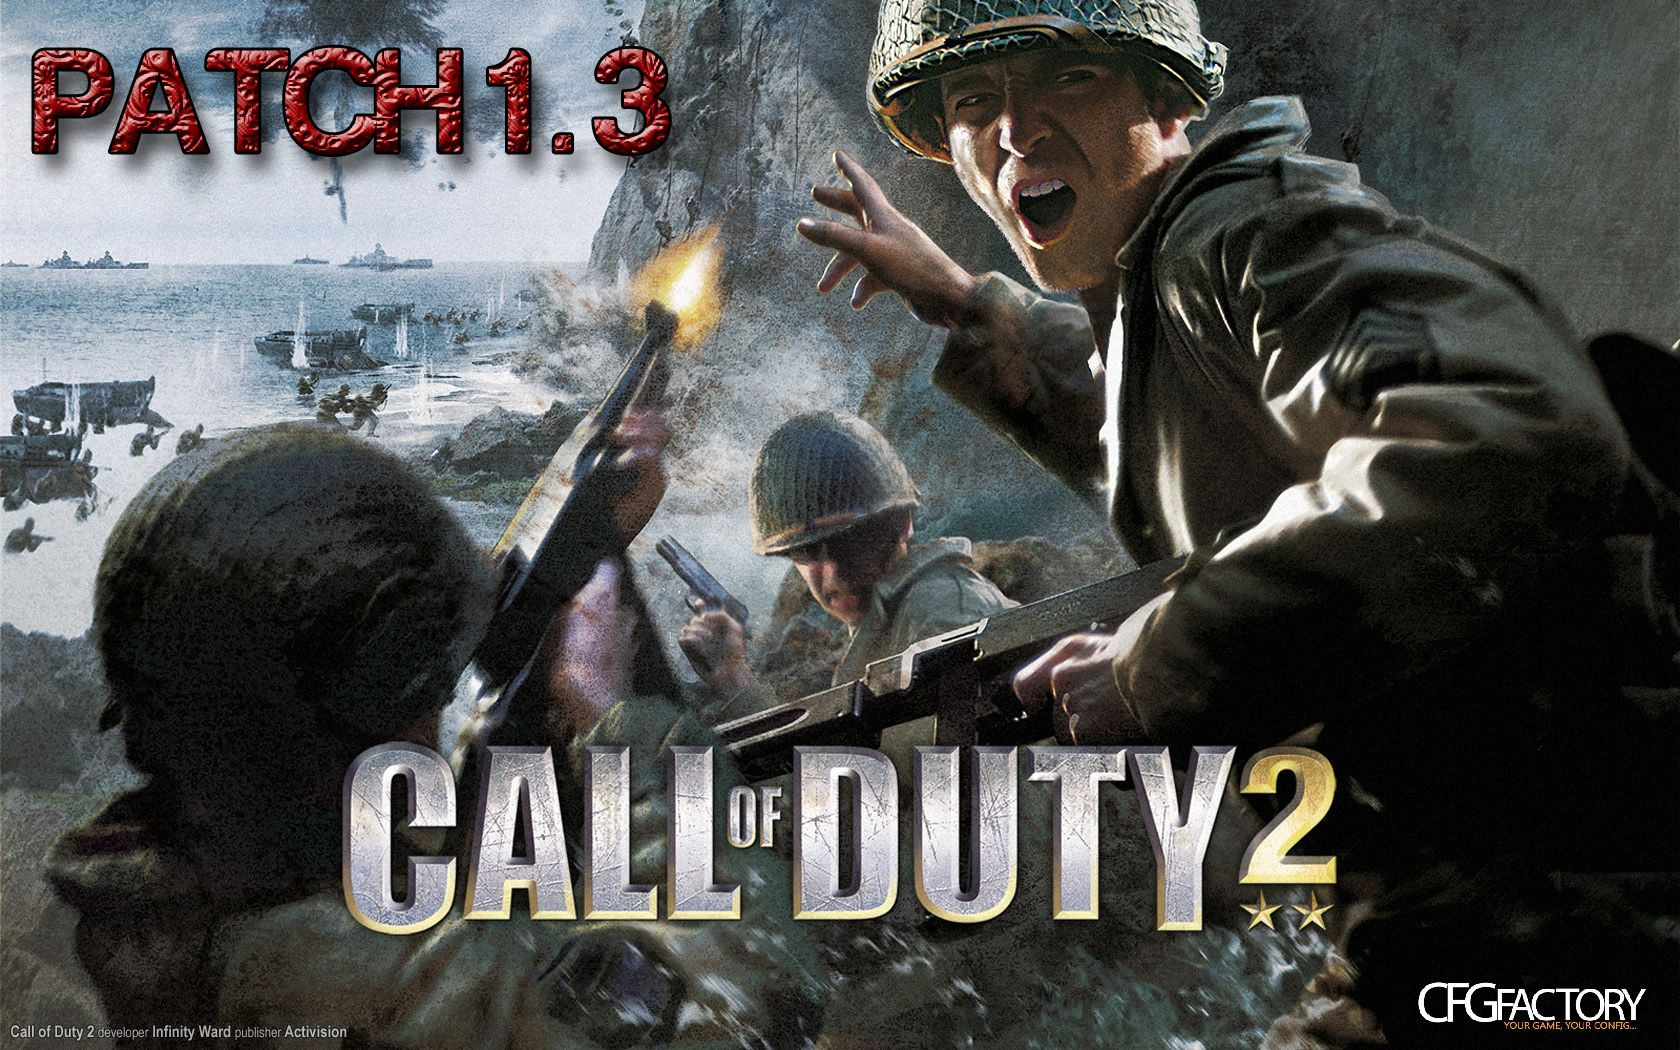 cod 2 multiplayer patch 1.3 download